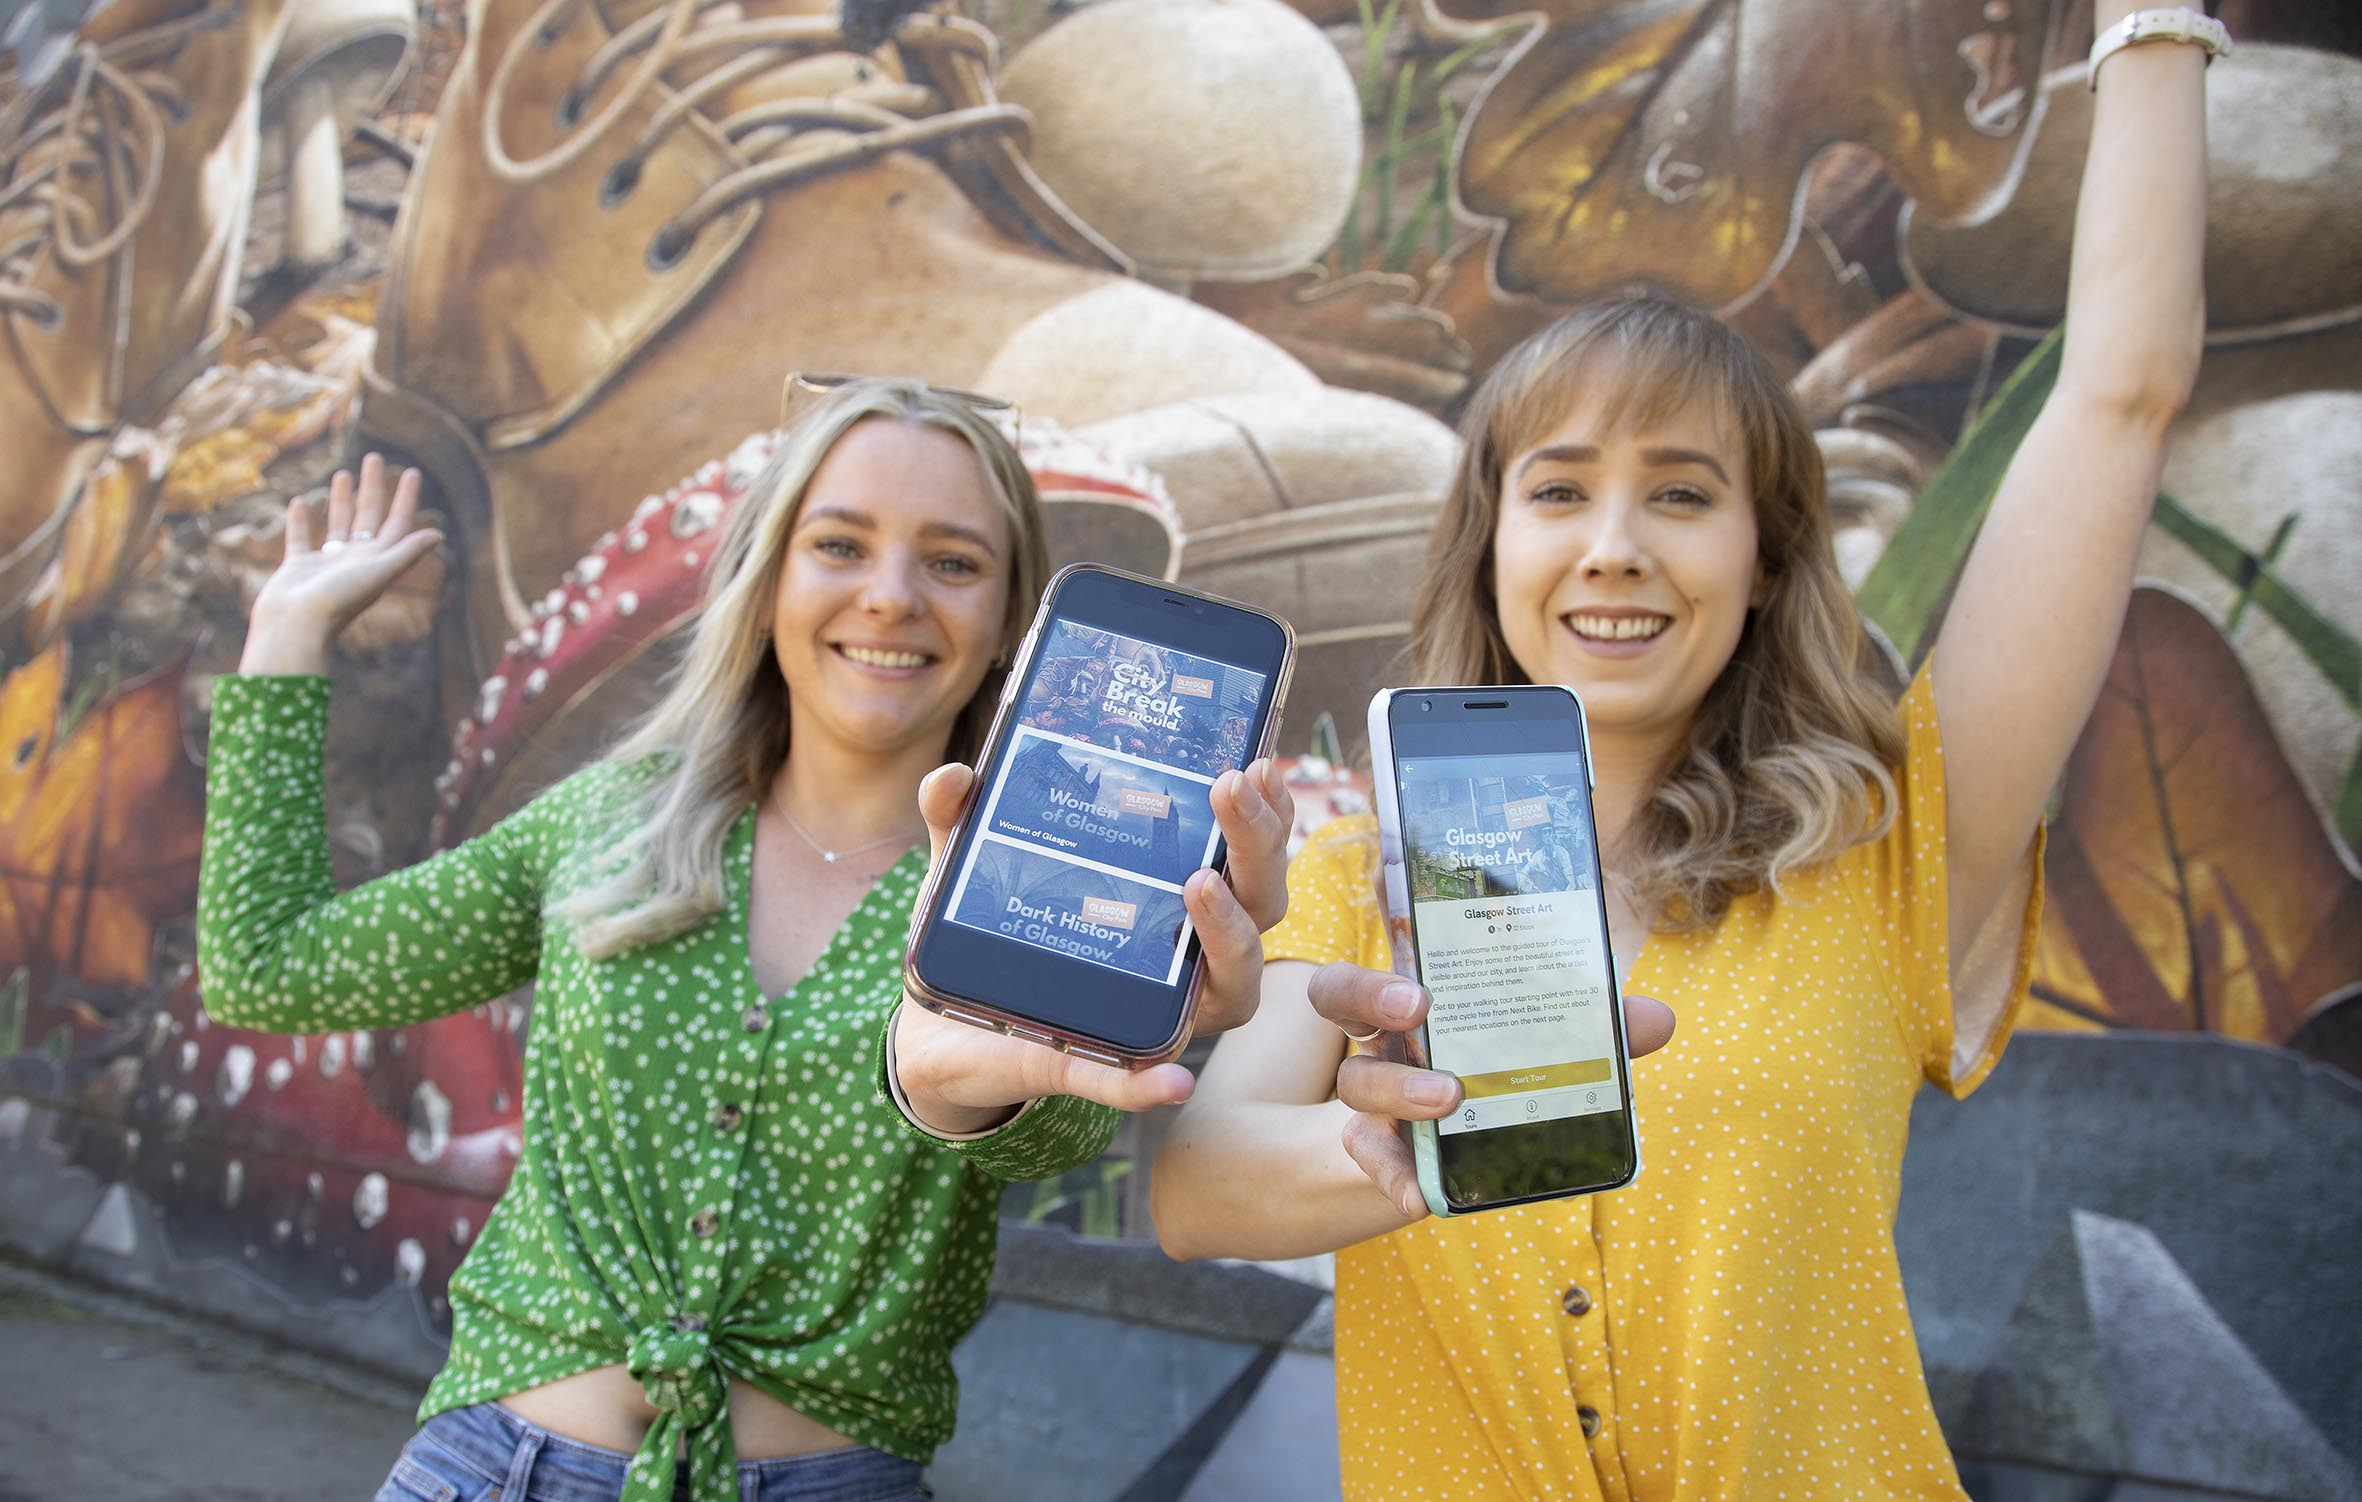 Glasgow Walking Tours app launched to show city in 'new light'